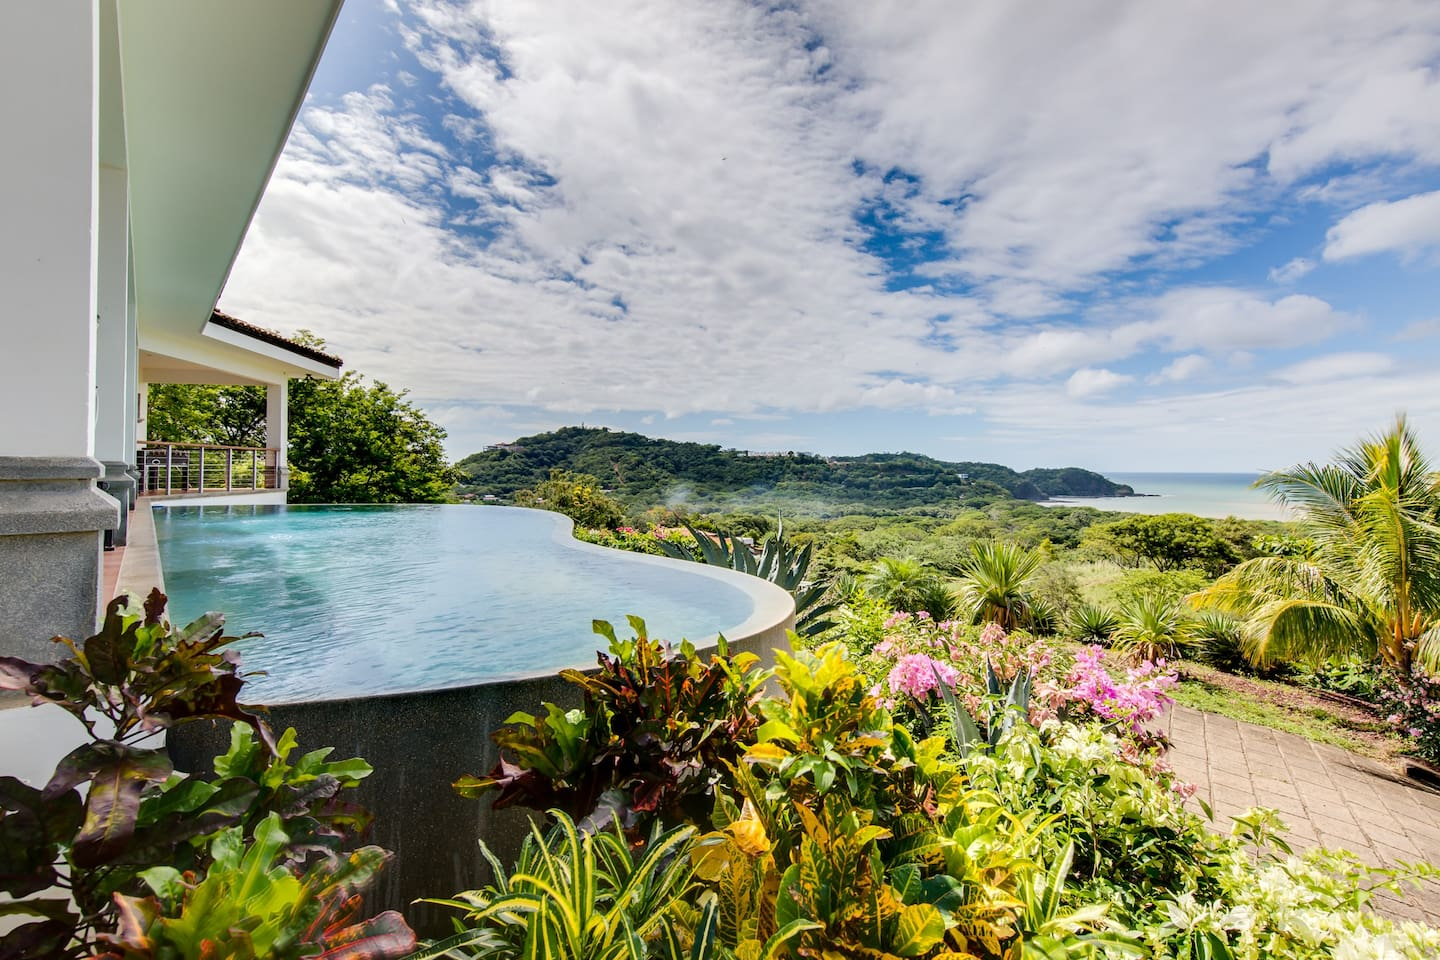 Casa Irie - Private infinity pool &  lush gardens overlooking the Pacific